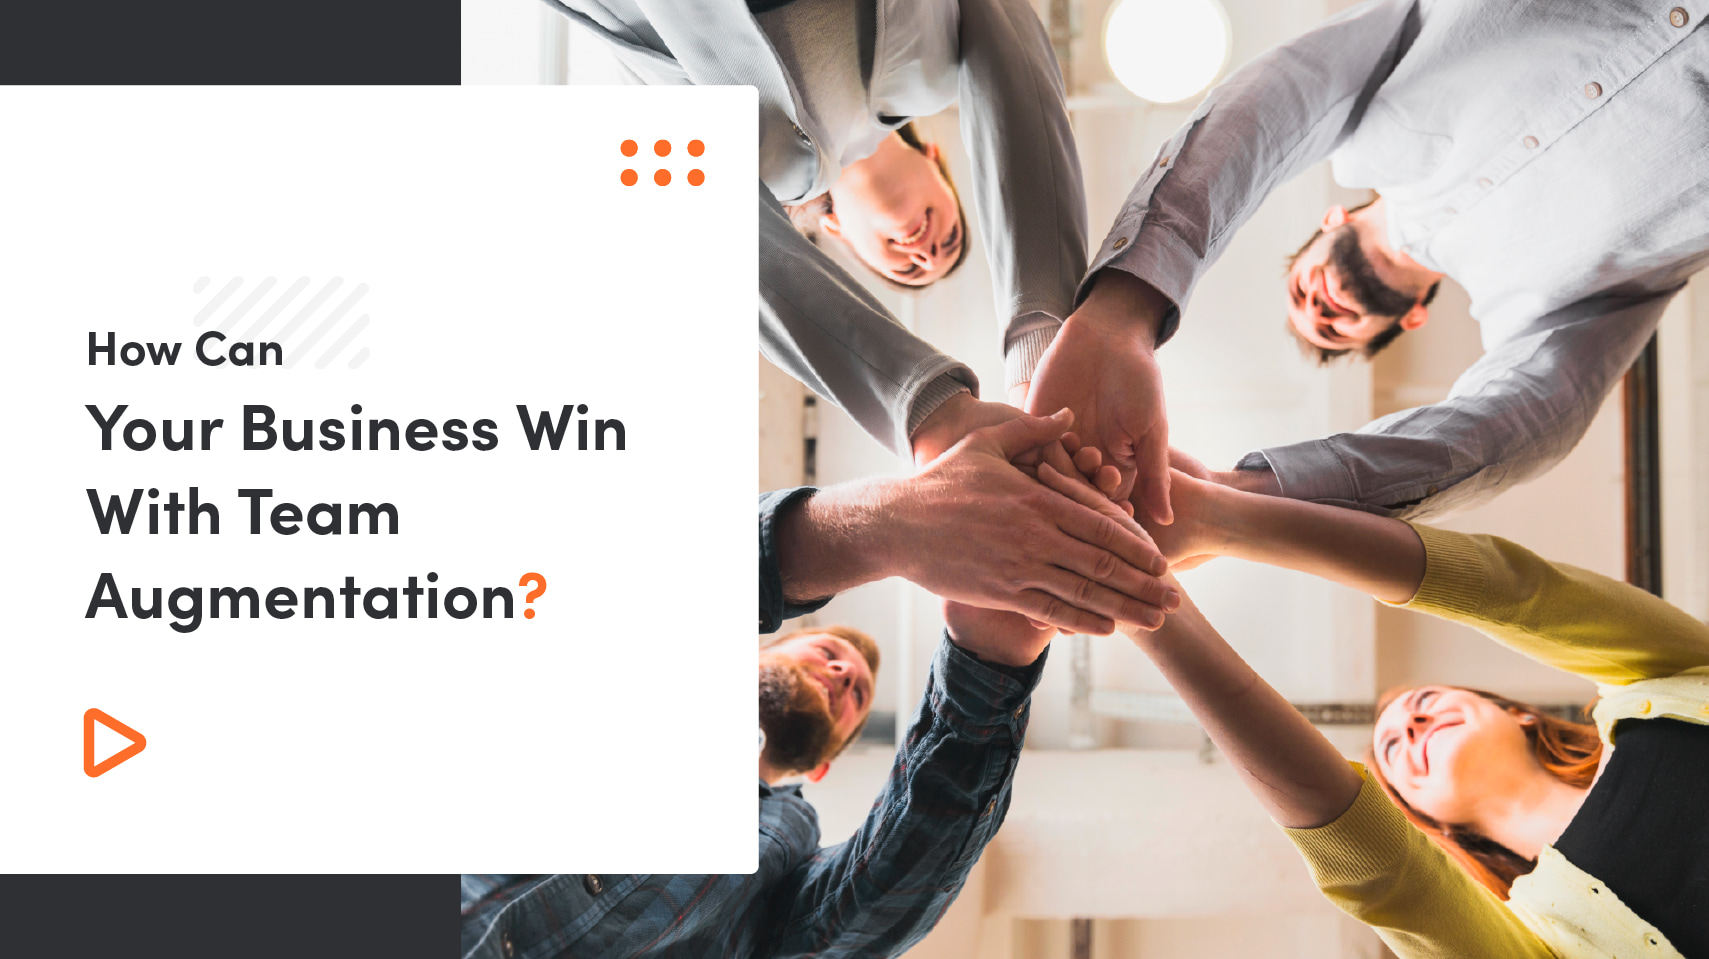 How Can Your Business Win With Team Augmentation?